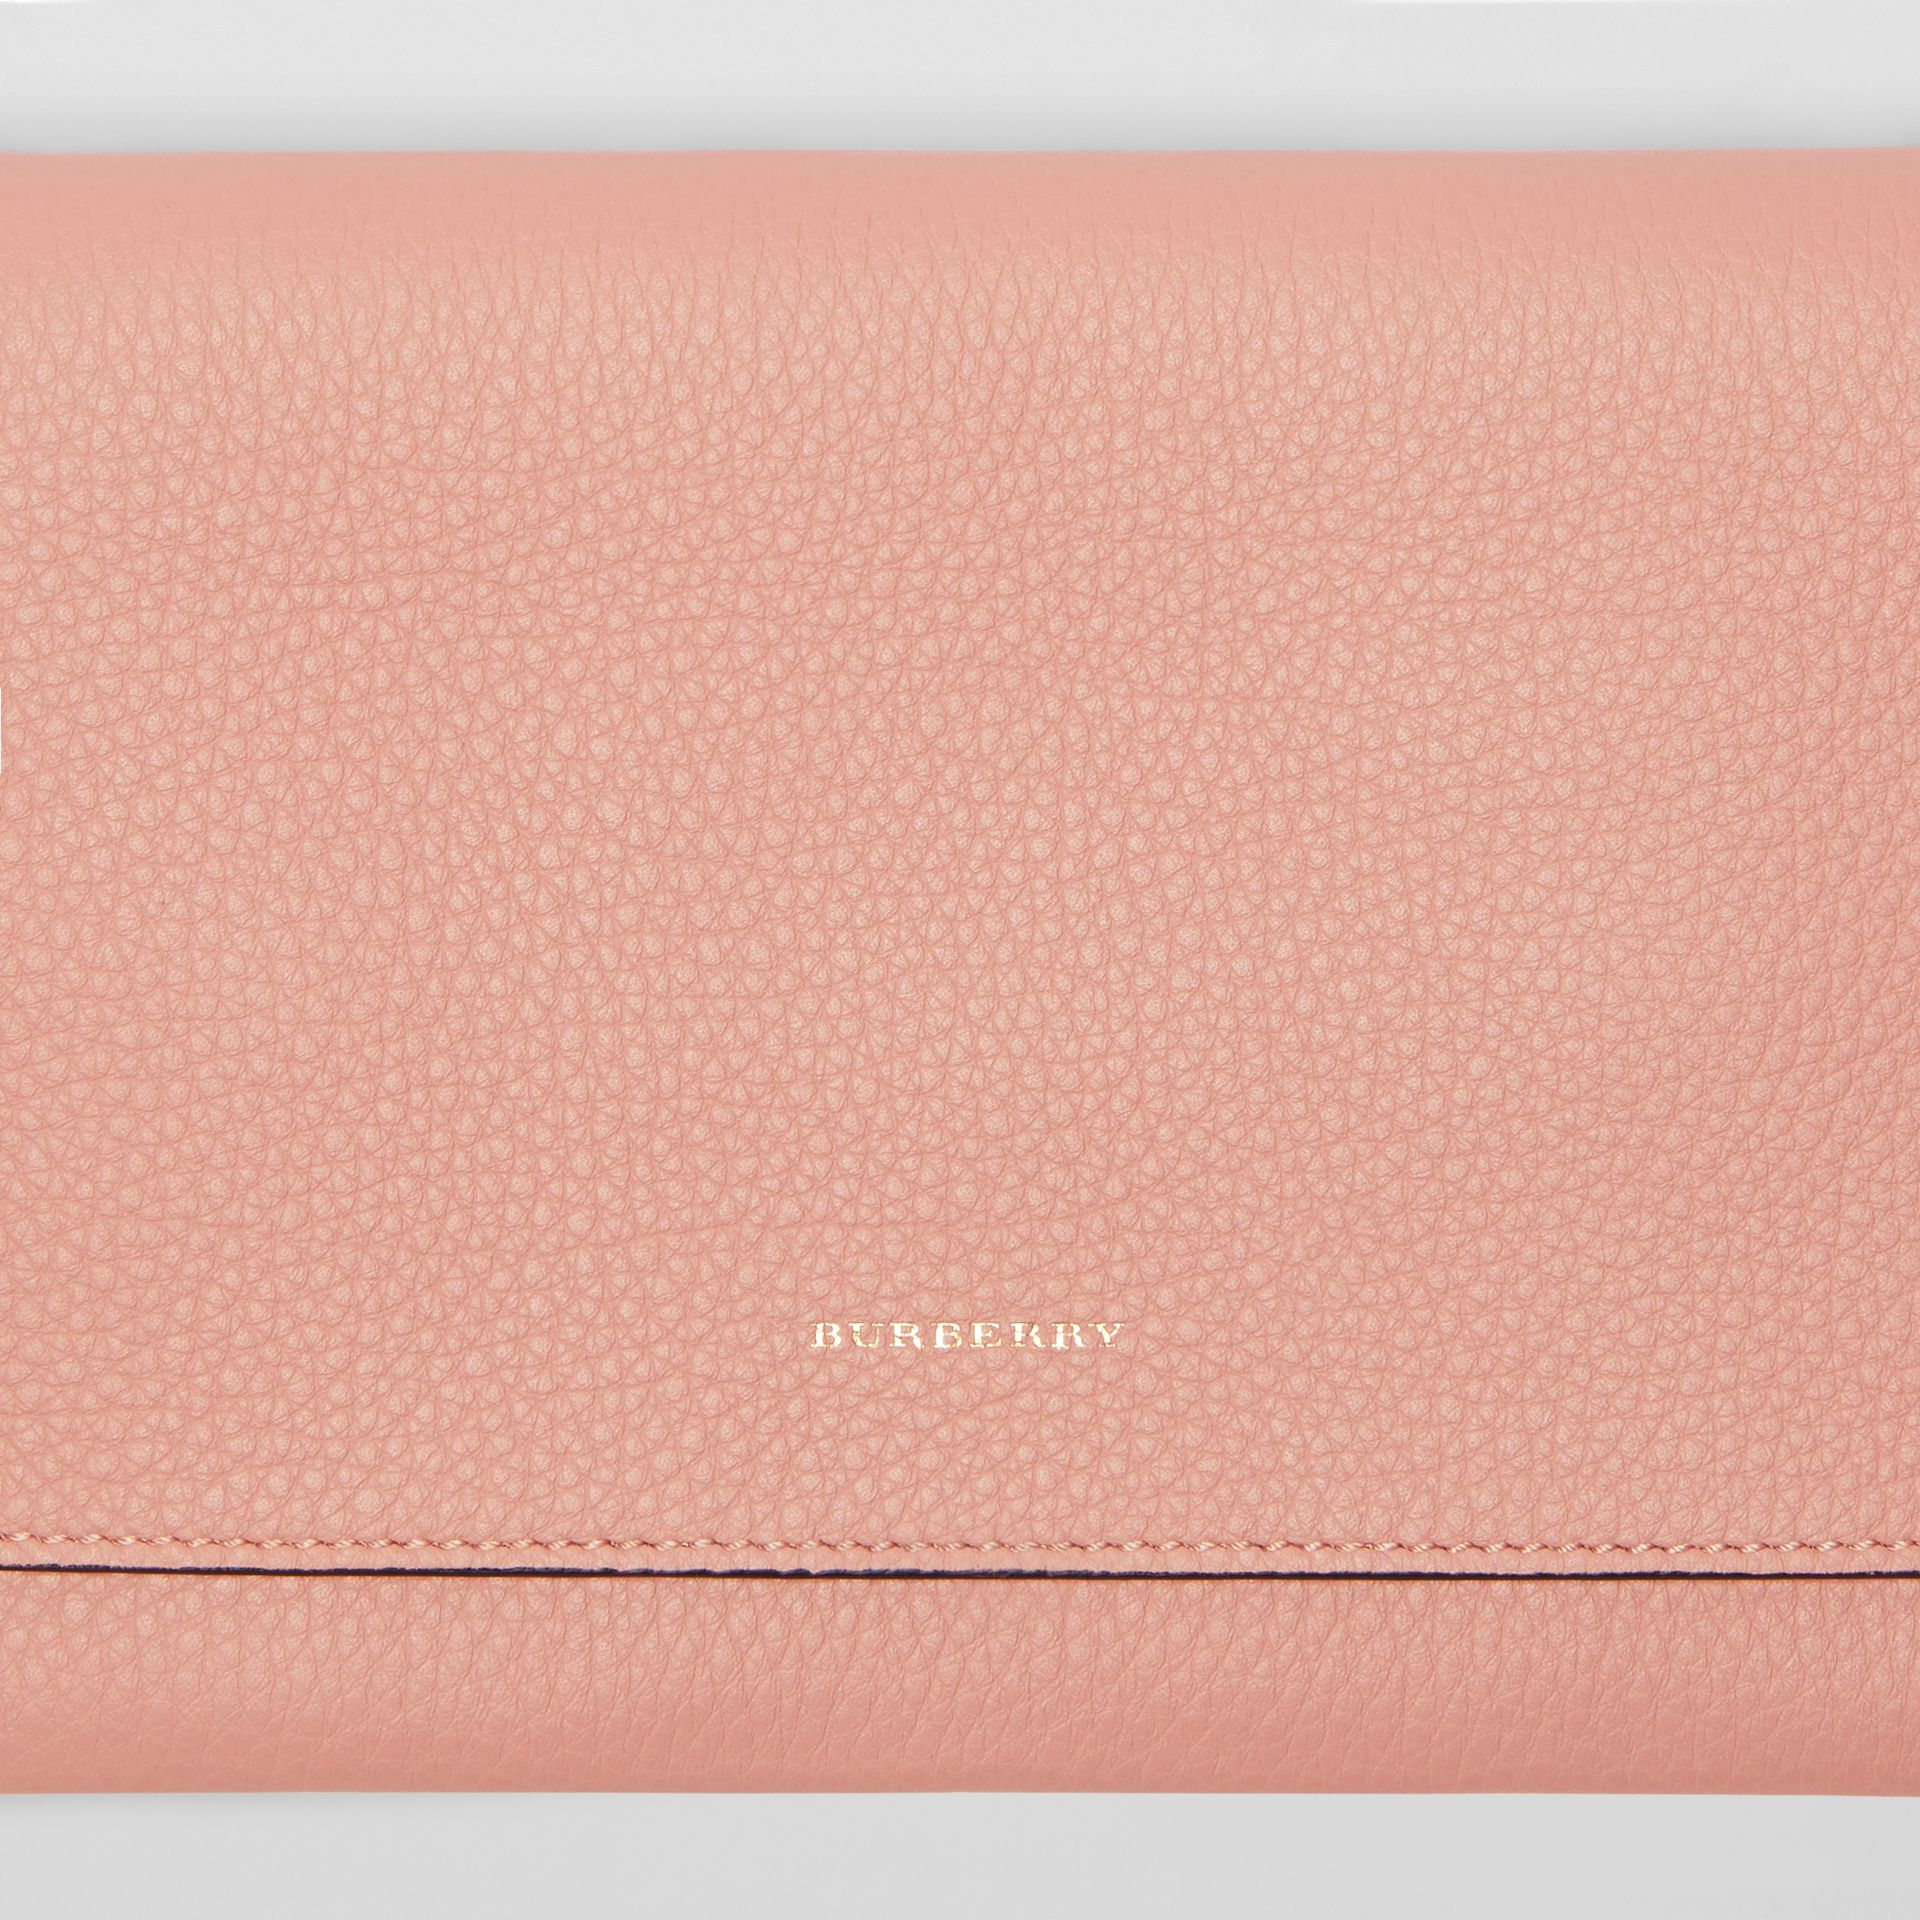 Two-tone Leather Wristlet Clutch in Ash Rose - Women | Burberry Canada - gallery image 1